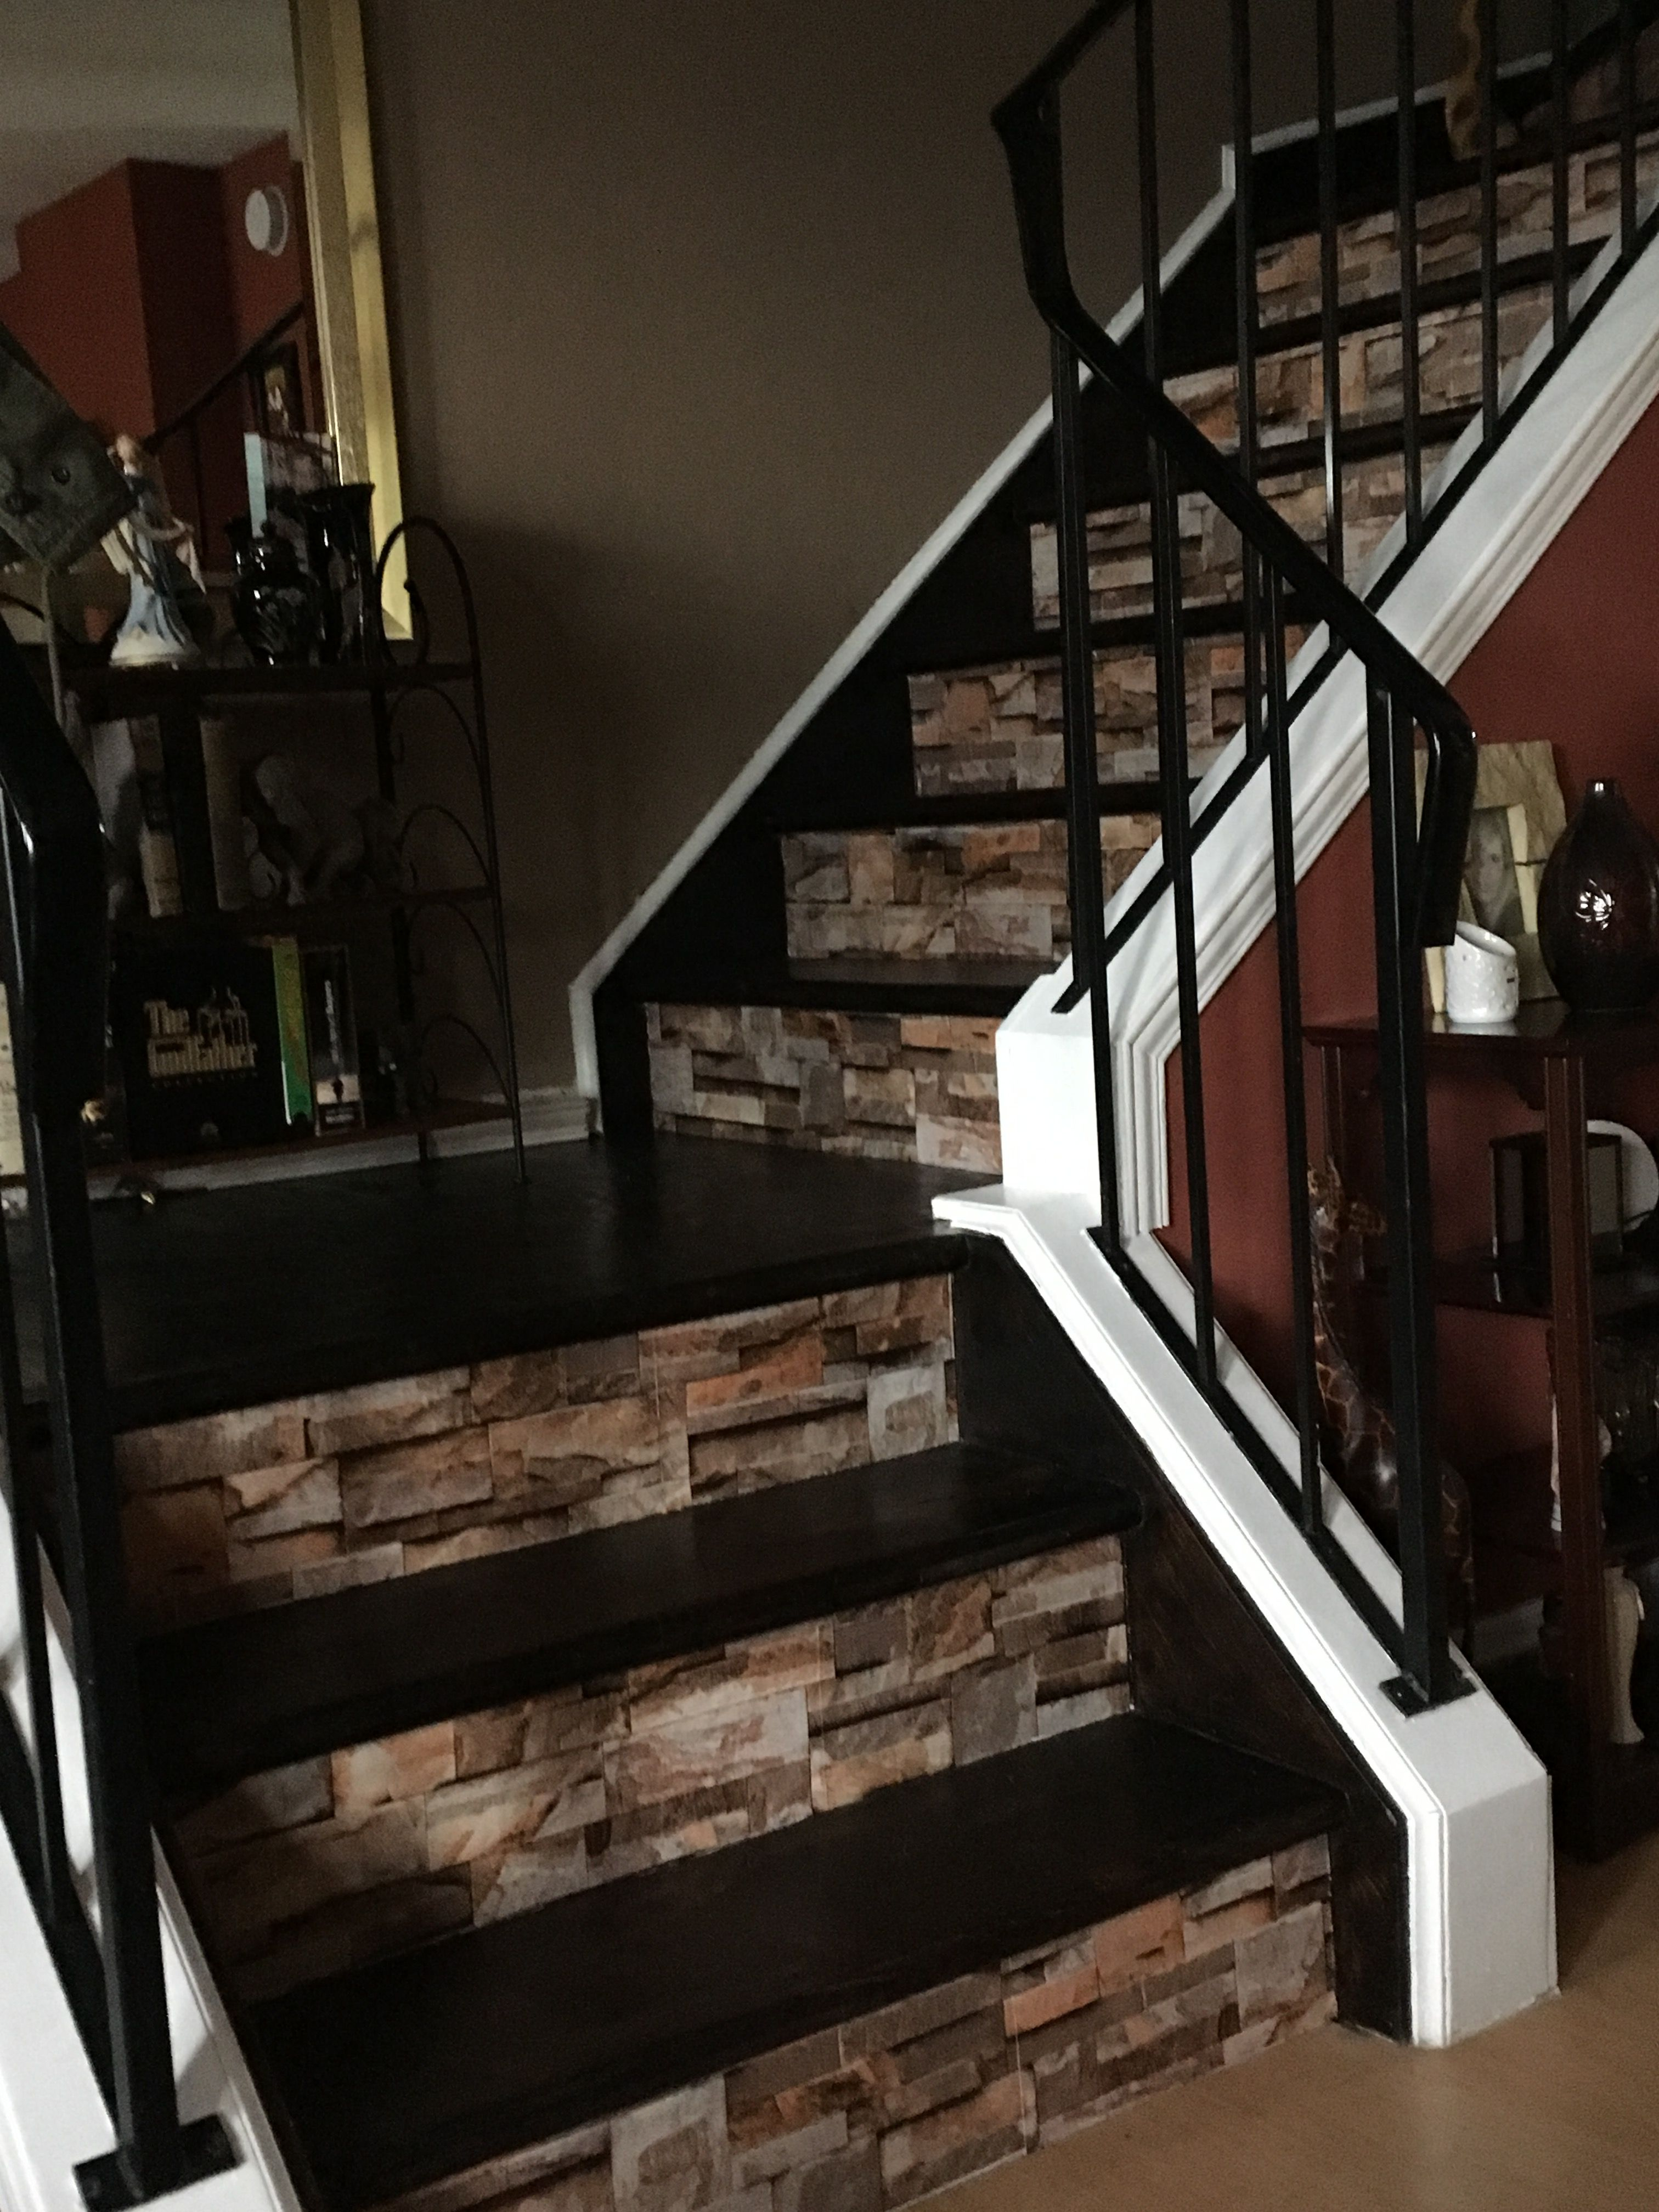 Our Stairs We Made Over Removed The Carpet Refinished The Steps And Put A Vinyl 3d Wall Paper On The Risers I Lo Staircase Remodel Home Remodeling New Homes